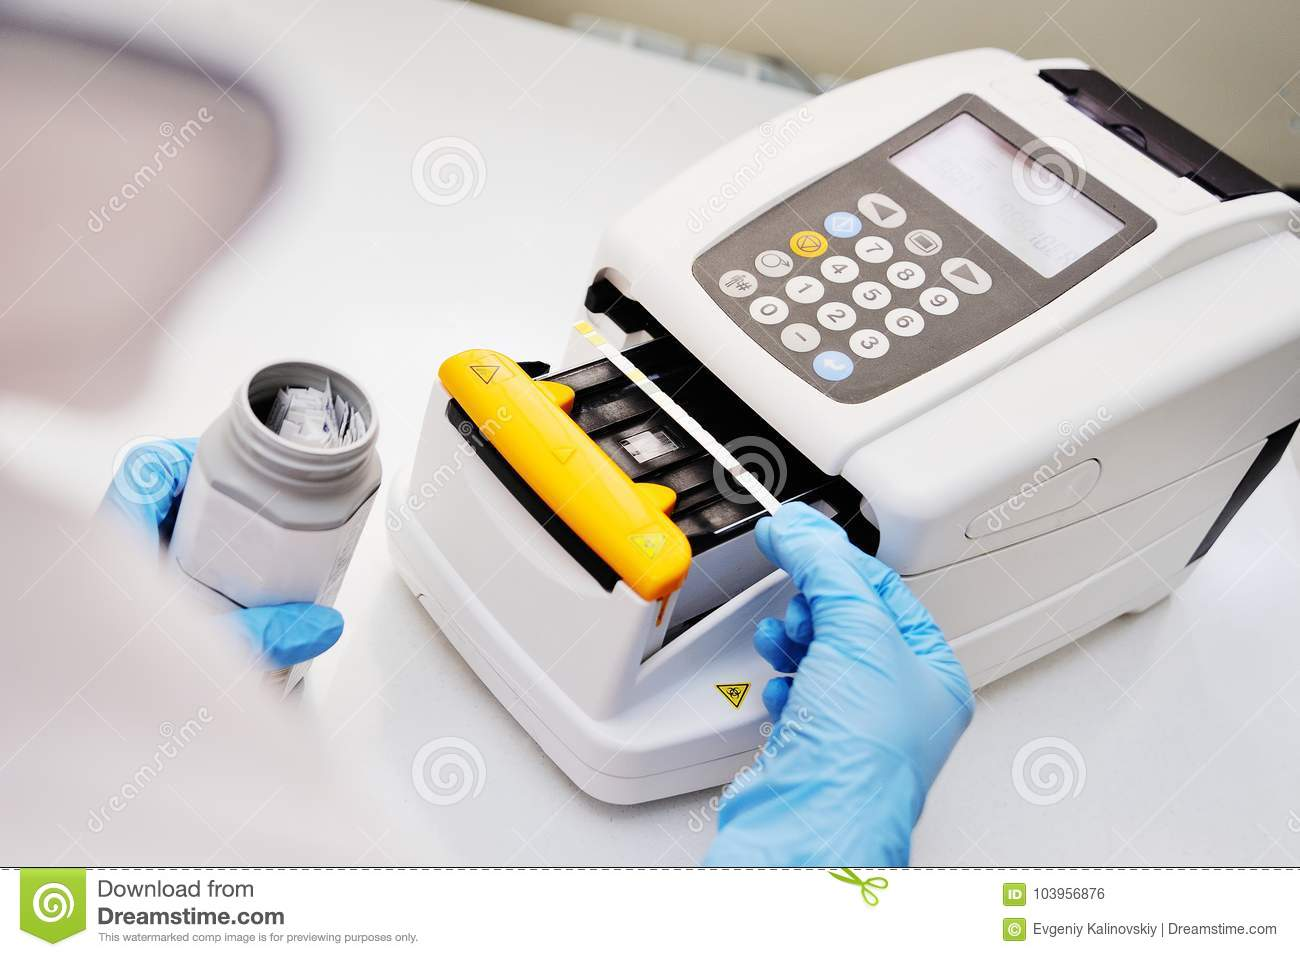 A doctor or lab assistant makes a urine test